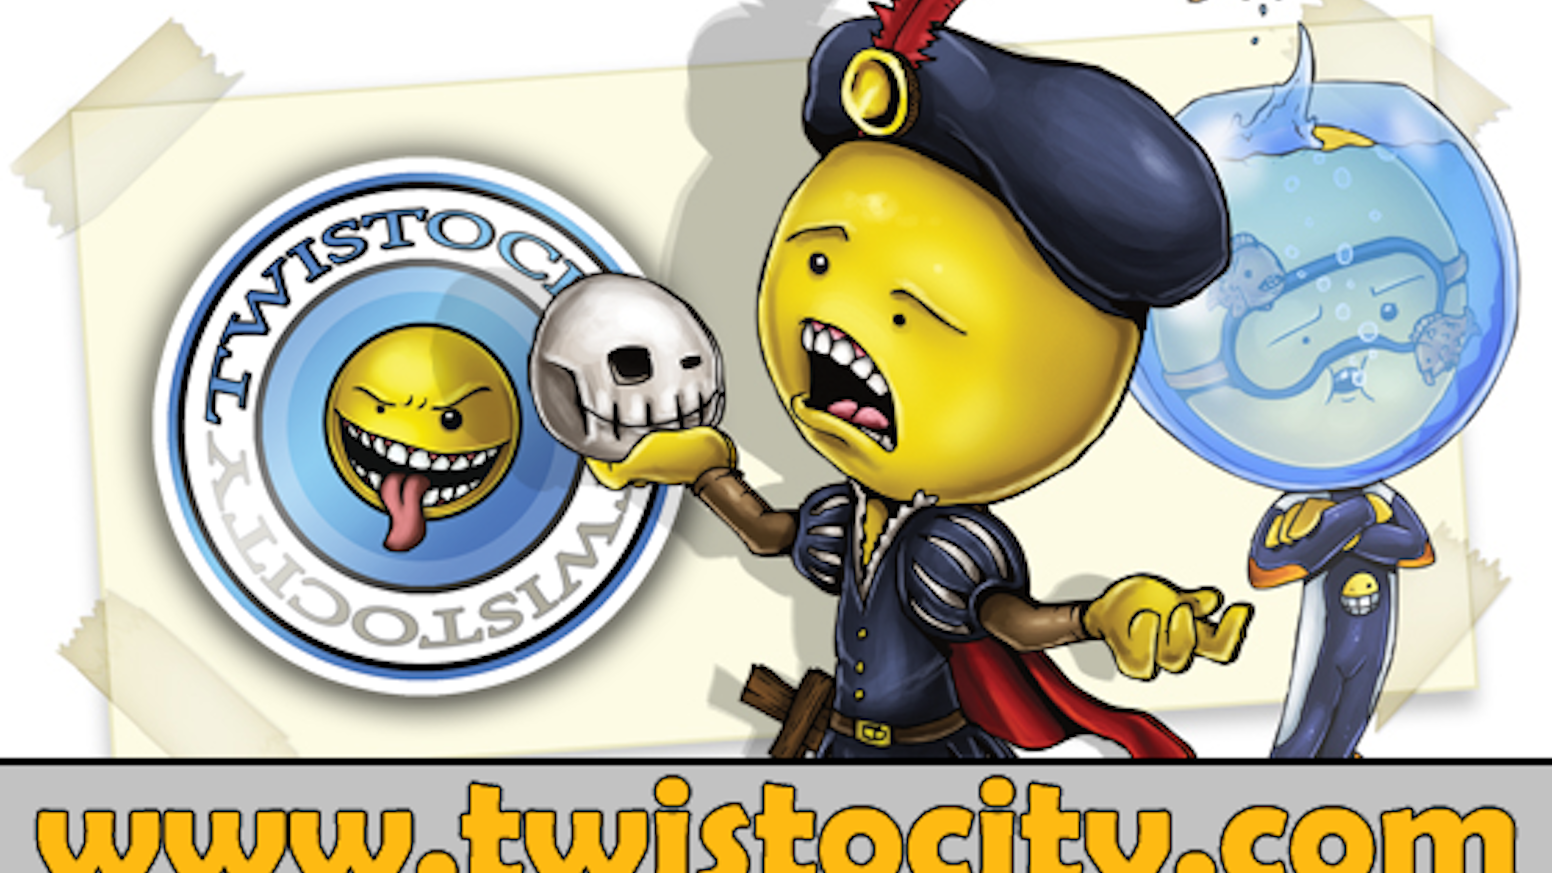 Twistocity is a card game where players combine ridiculous voices with tongue twisters while secretly improving your speech.